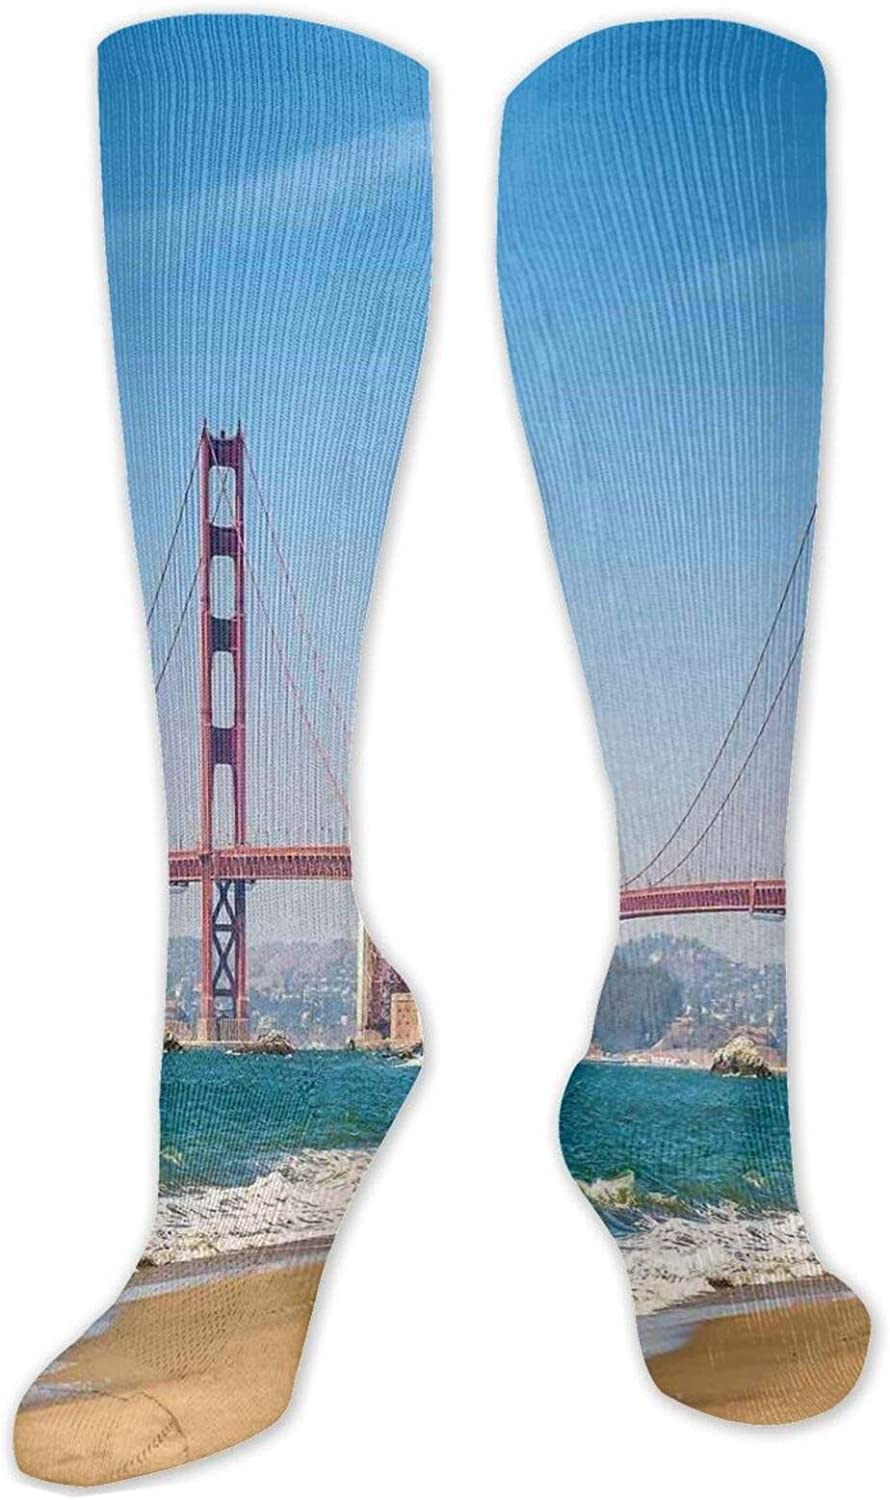 Compression High Socks-Beautiful Flowers Bloom In Nostalgic Colors Best for Running,Athletic,Hiking,Travel,Flight